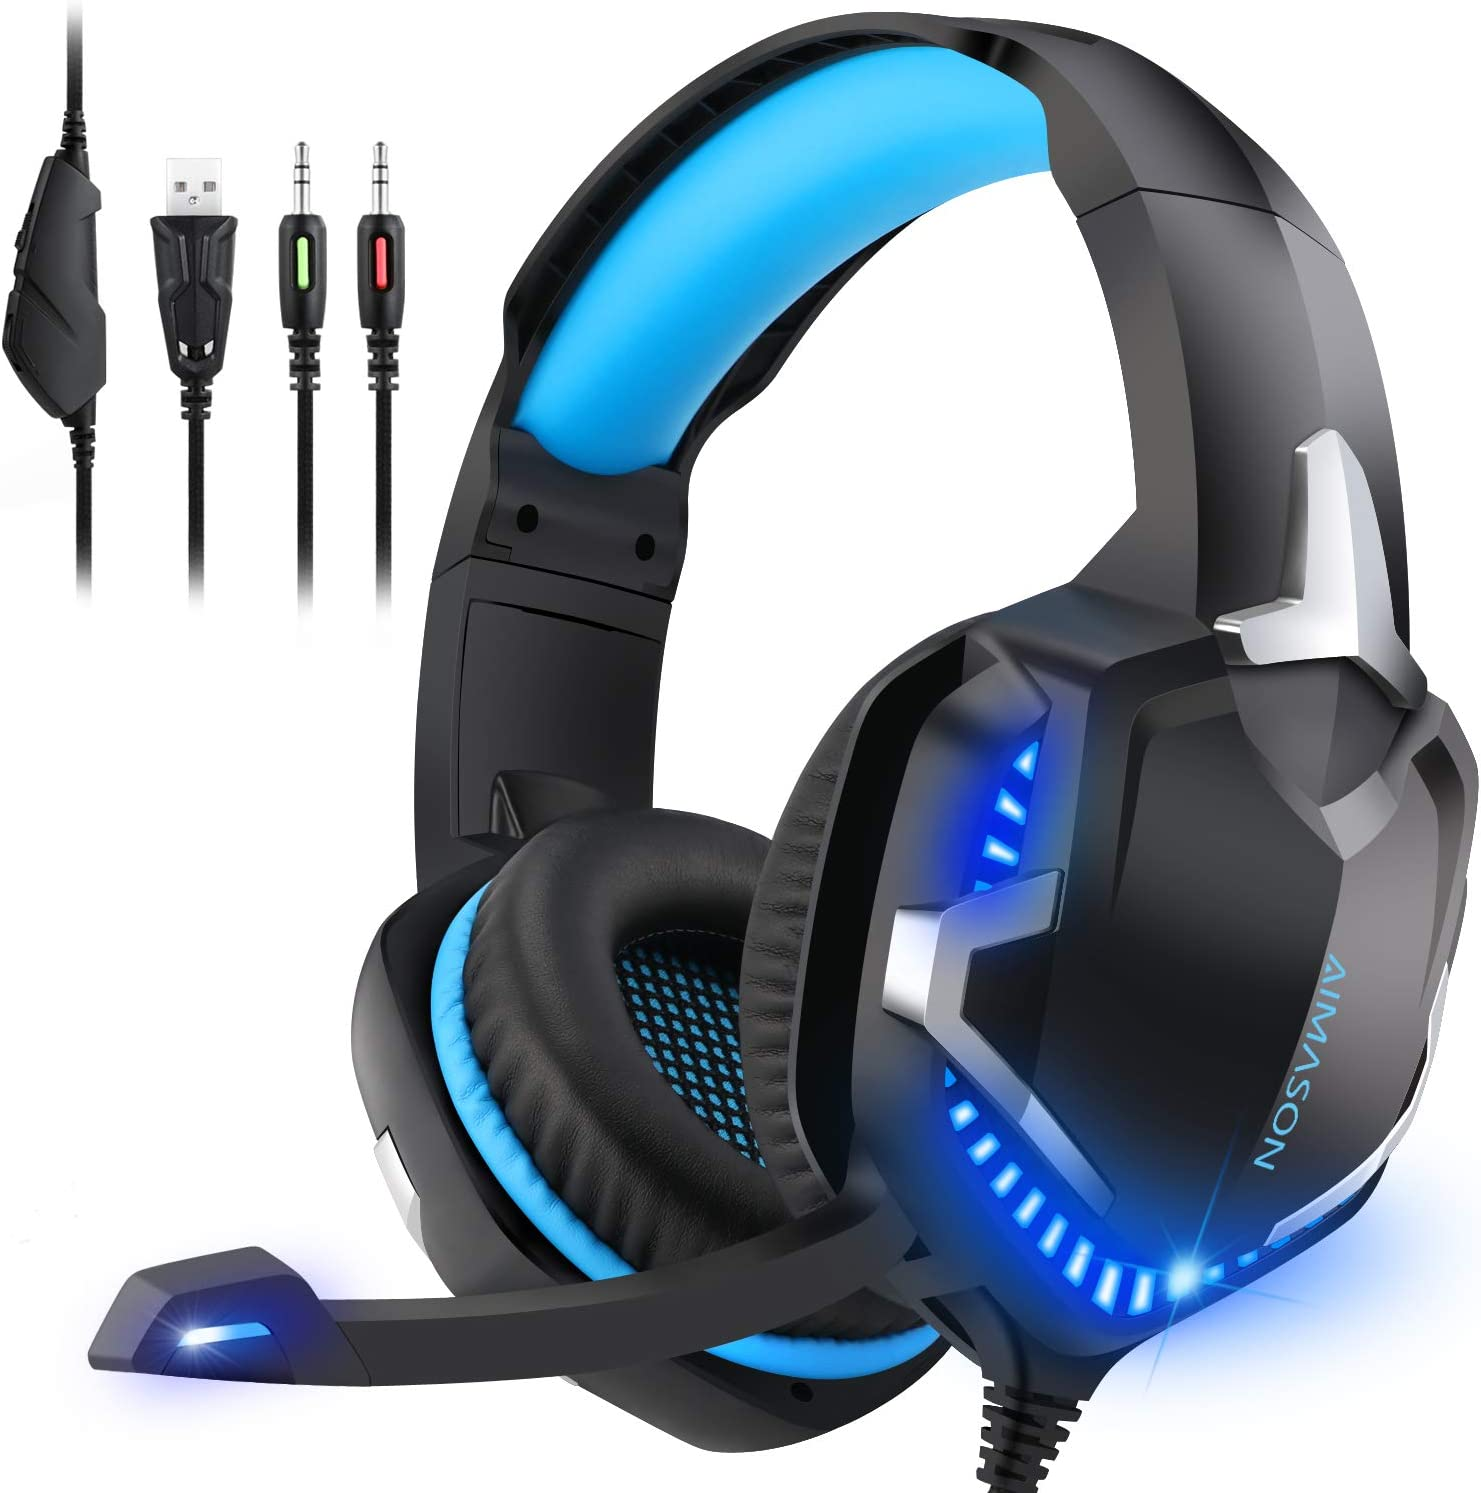 PS4 Gaming Headset with Mic, AIMASON Stereo Headphone for Games/Xbox One S/Nintendo Switch/PC/Mac/Laptop, Over Ear Headset with Surround Sound, LED Light & Noise Canceling Microphone